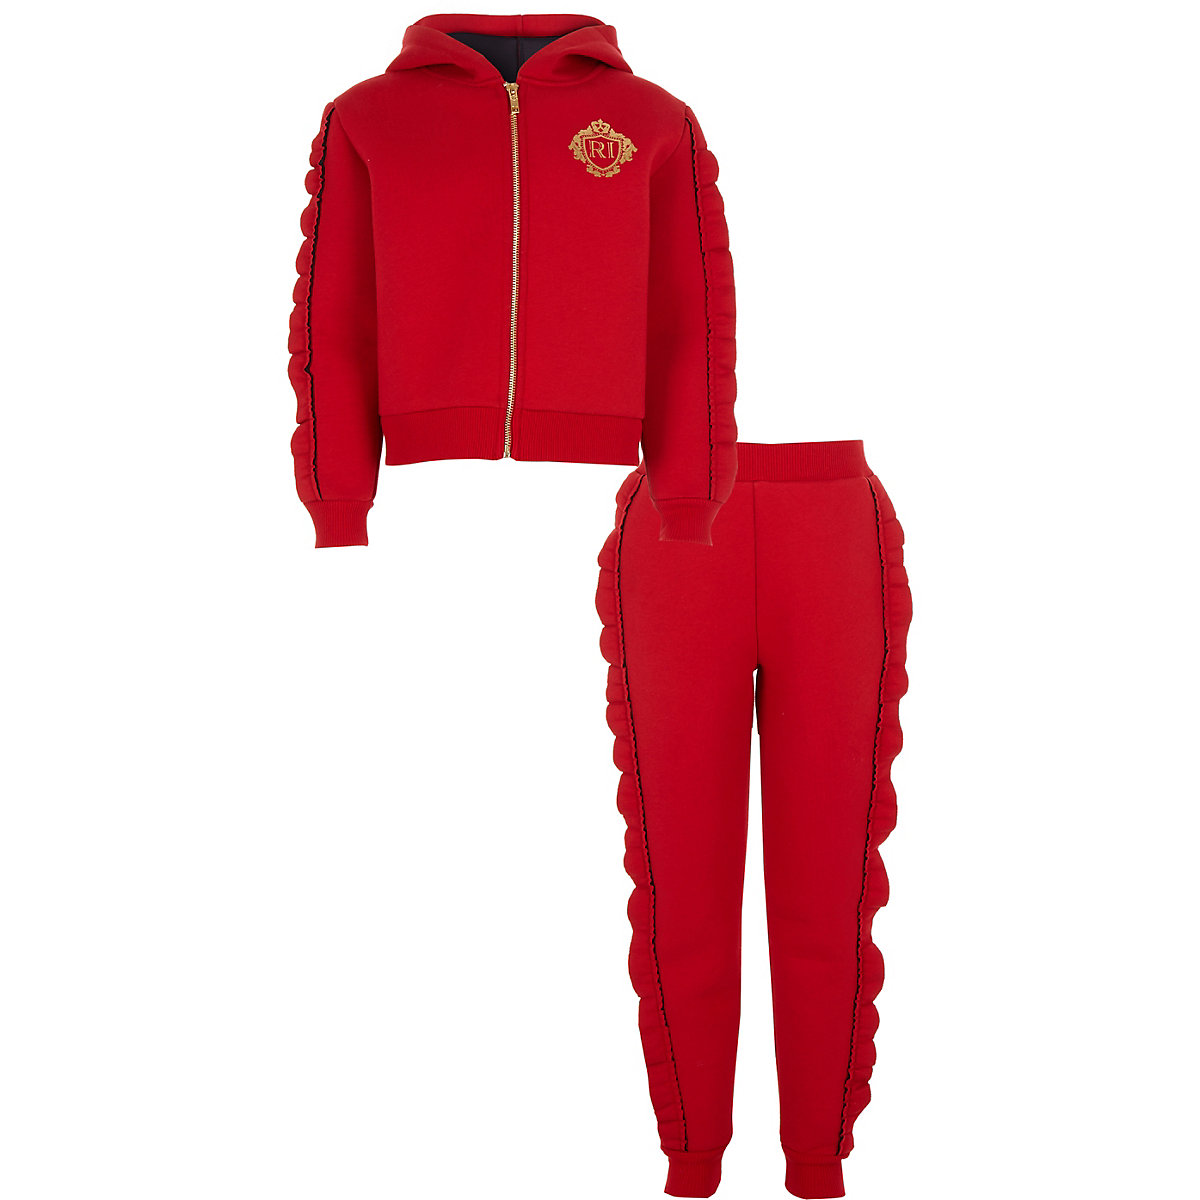 Girls red diamante frill hoodie outfit